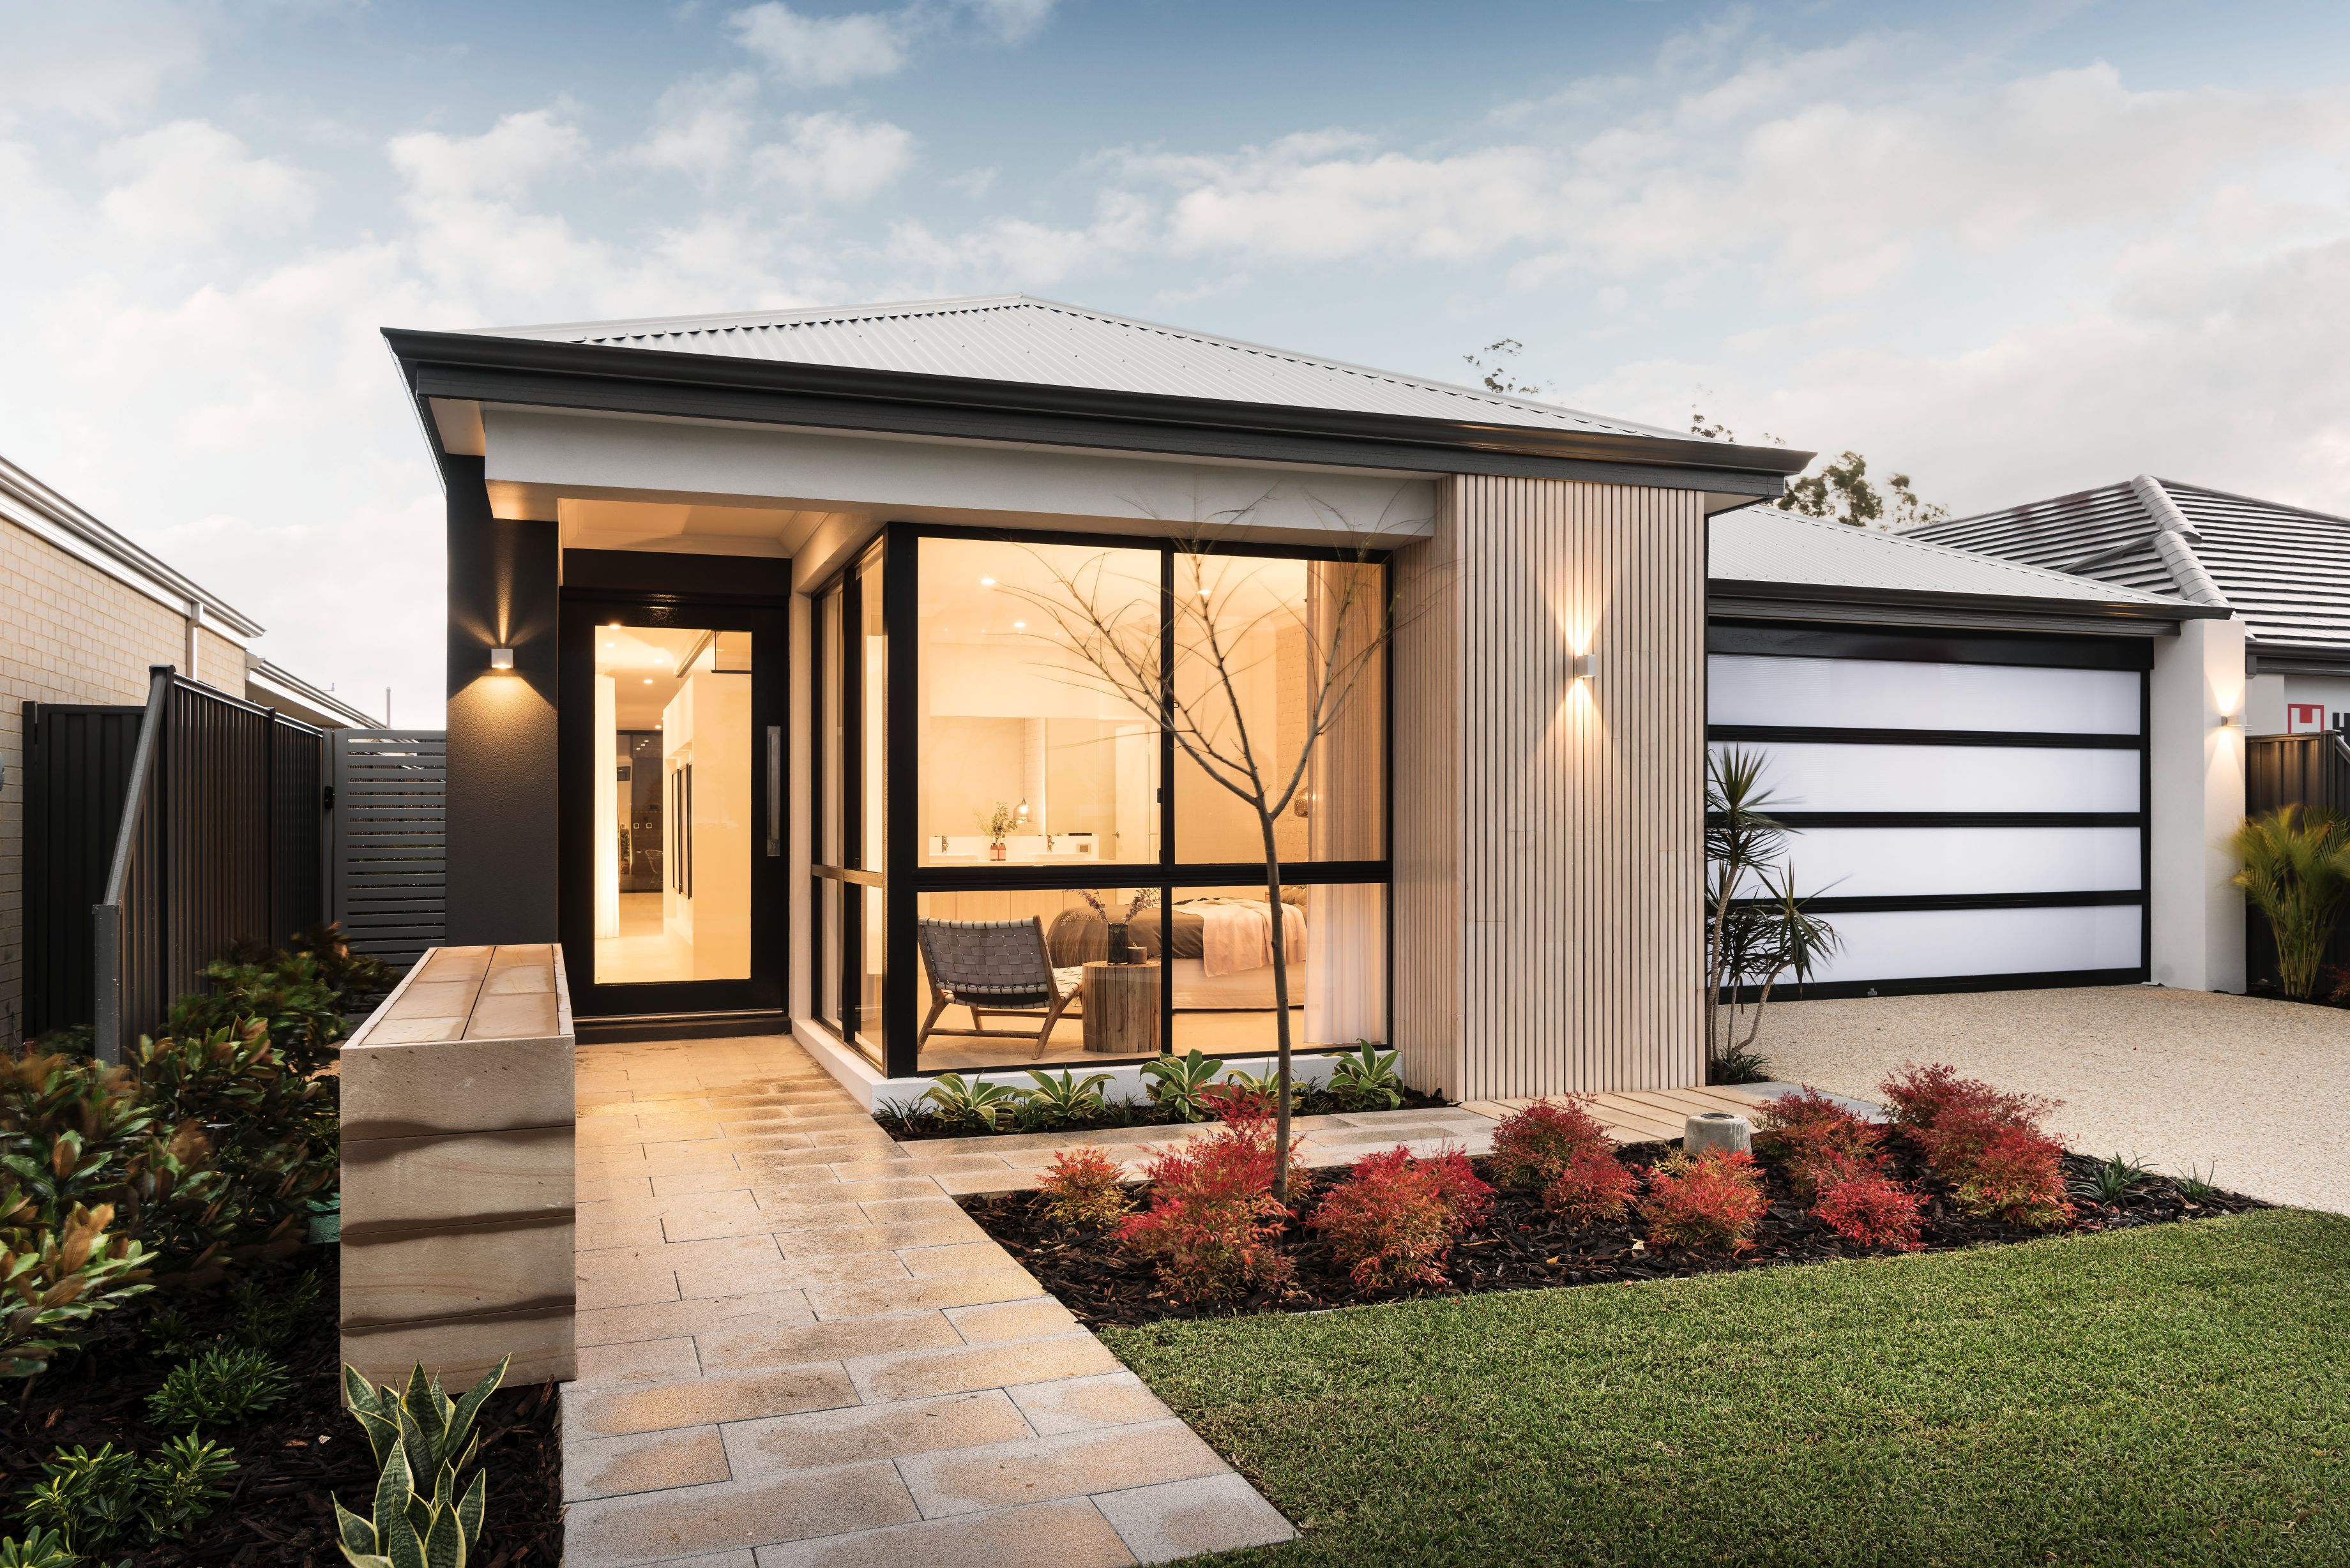 Design your own home perth wa